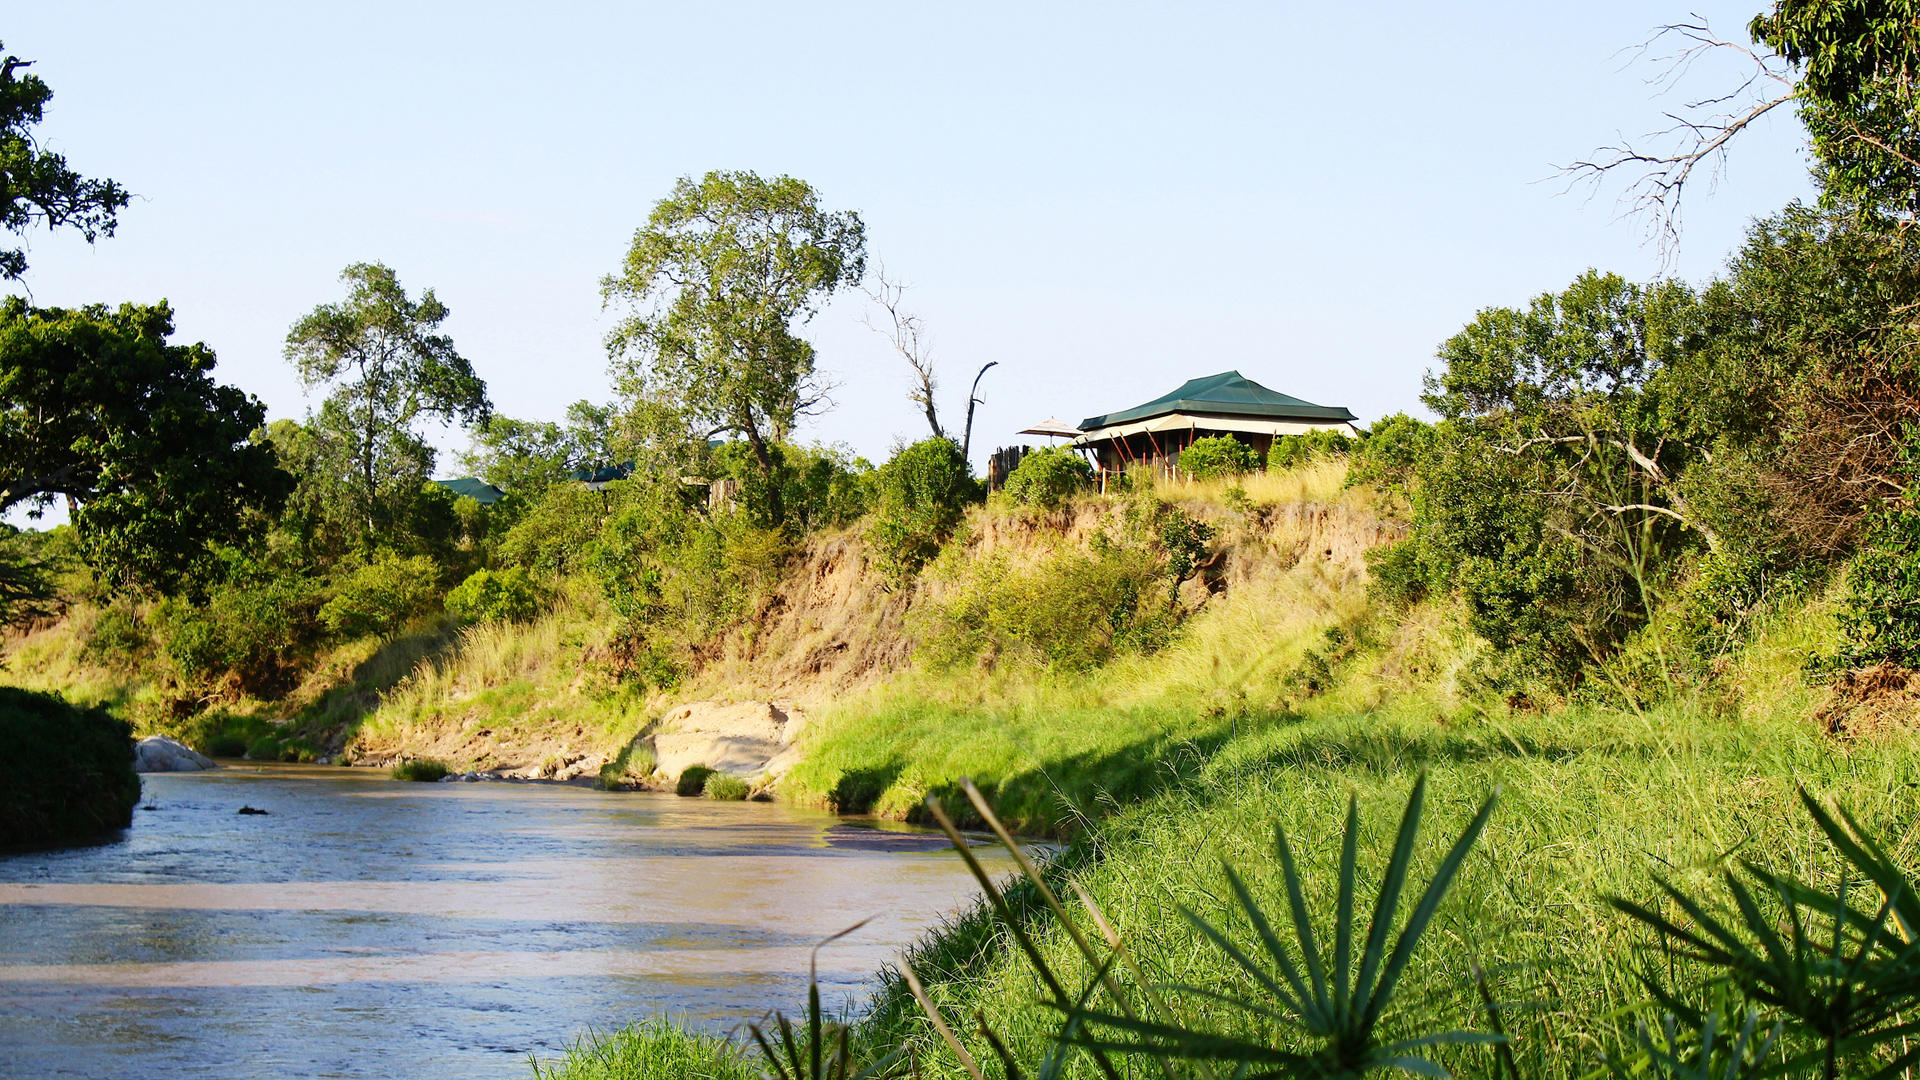 Sand-River-Masai-Mara---View-of-Guest-Room